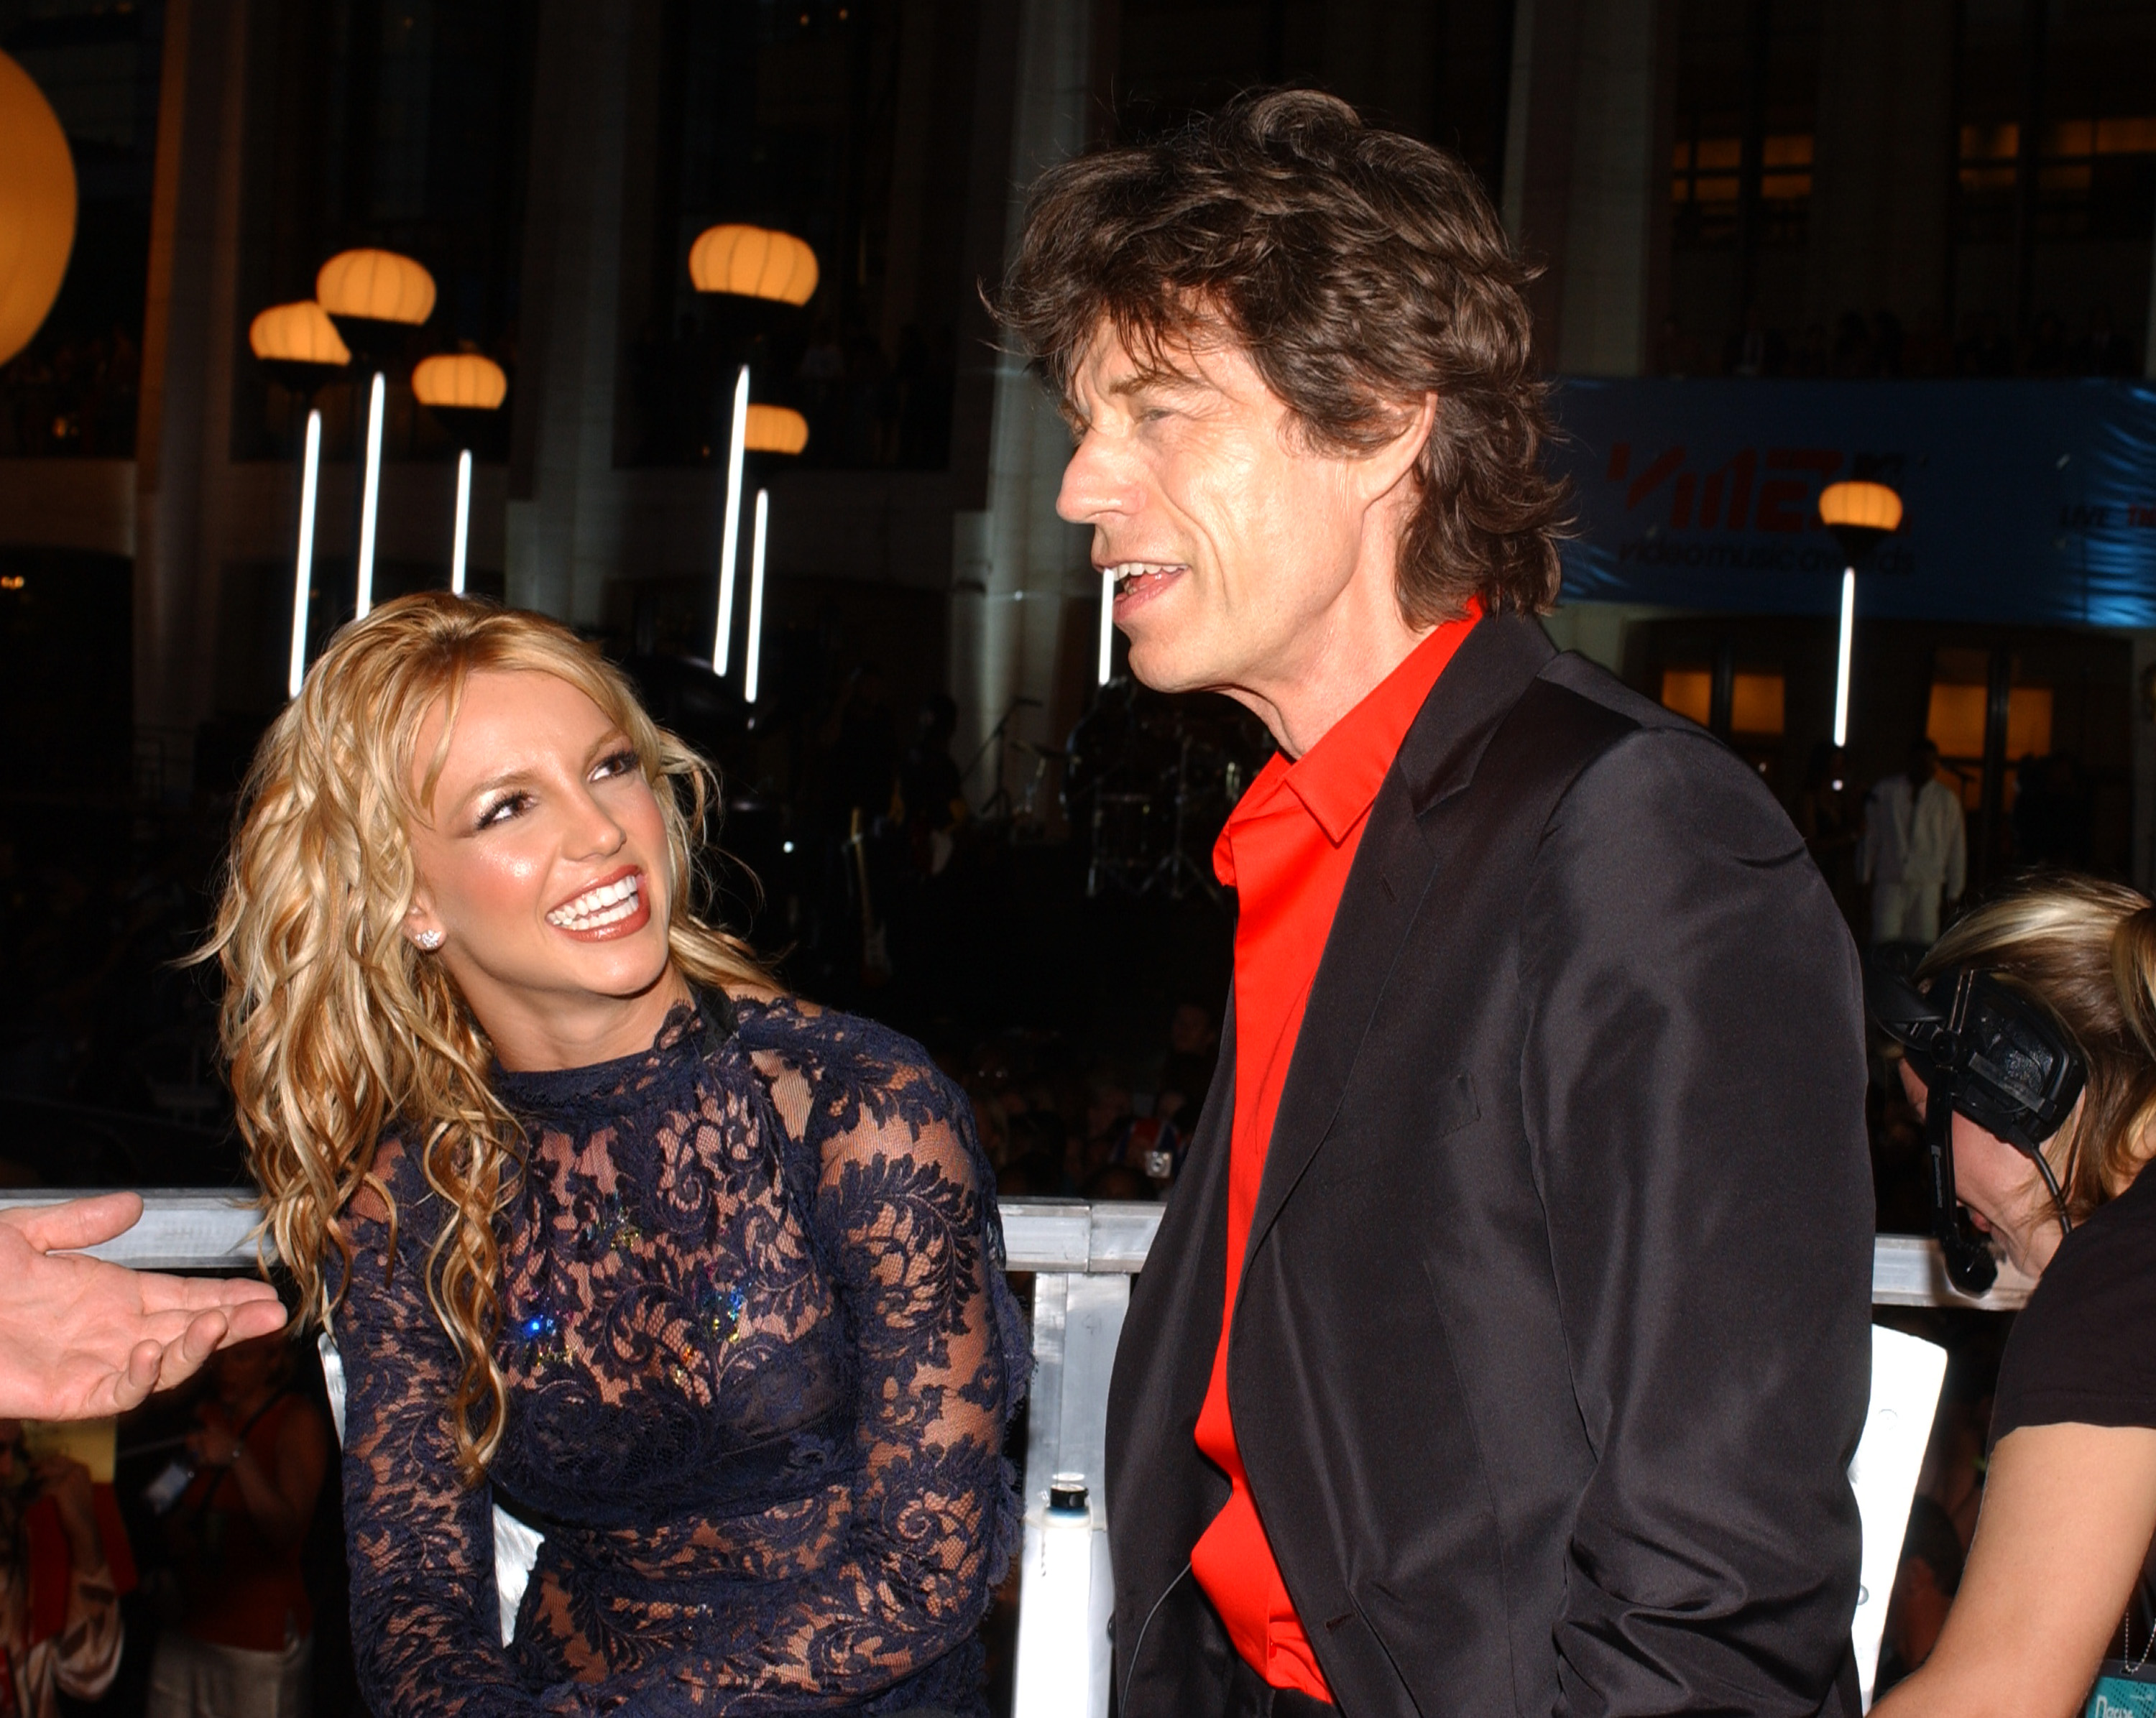 Britney Spears and Mick Jagger (Photo by KMazur/WireImage)